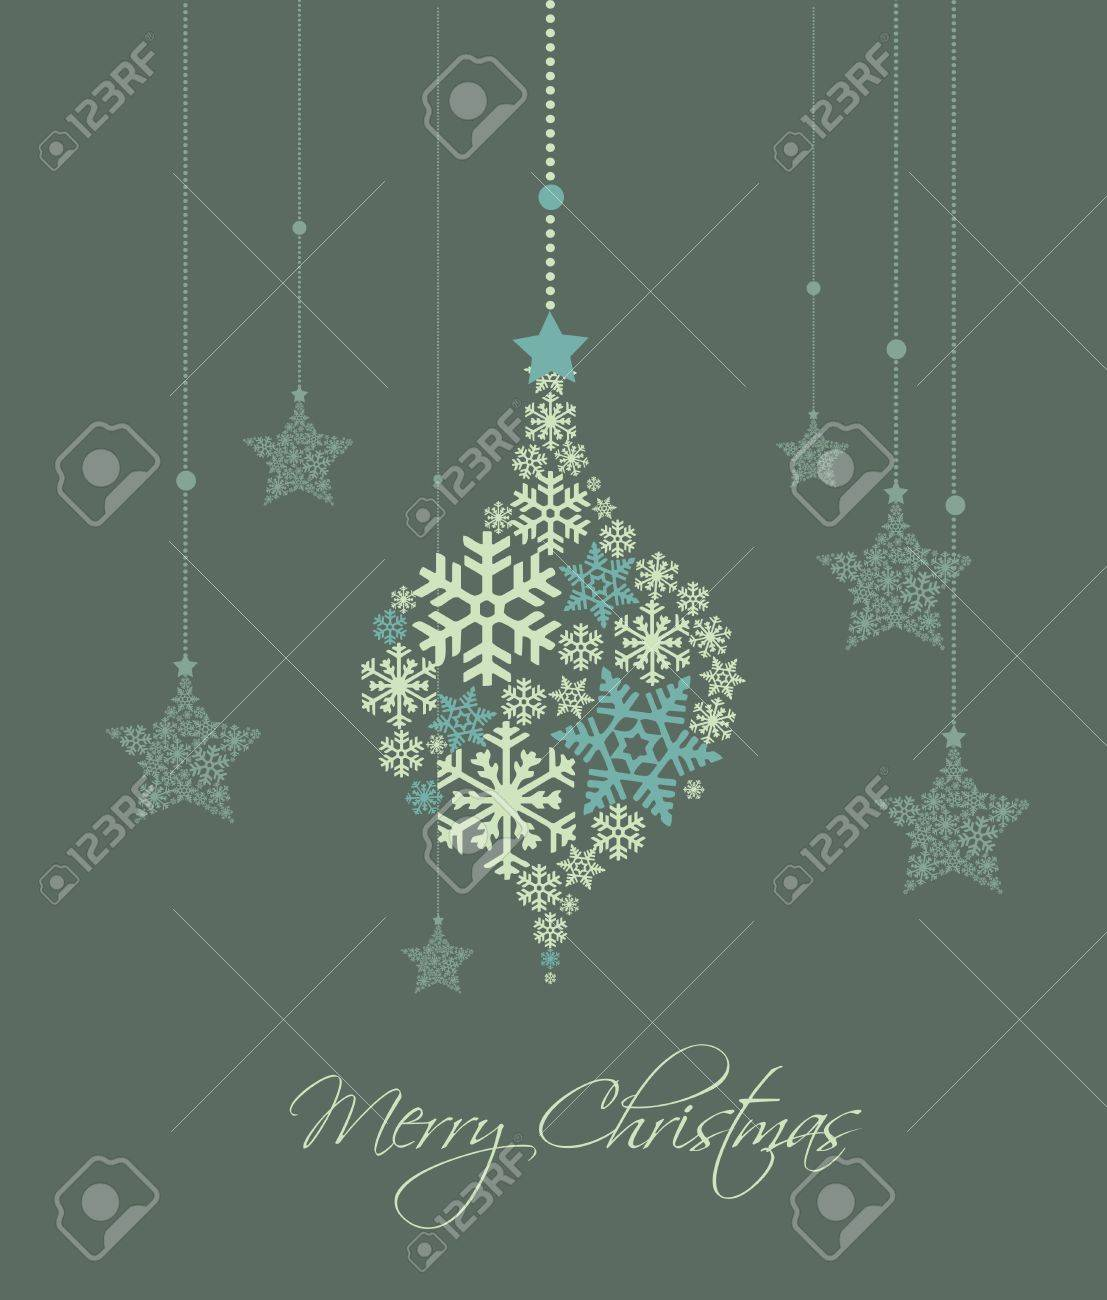 Christmas decoration made from snowflakes, vector illustration Stock Vector - 14971521